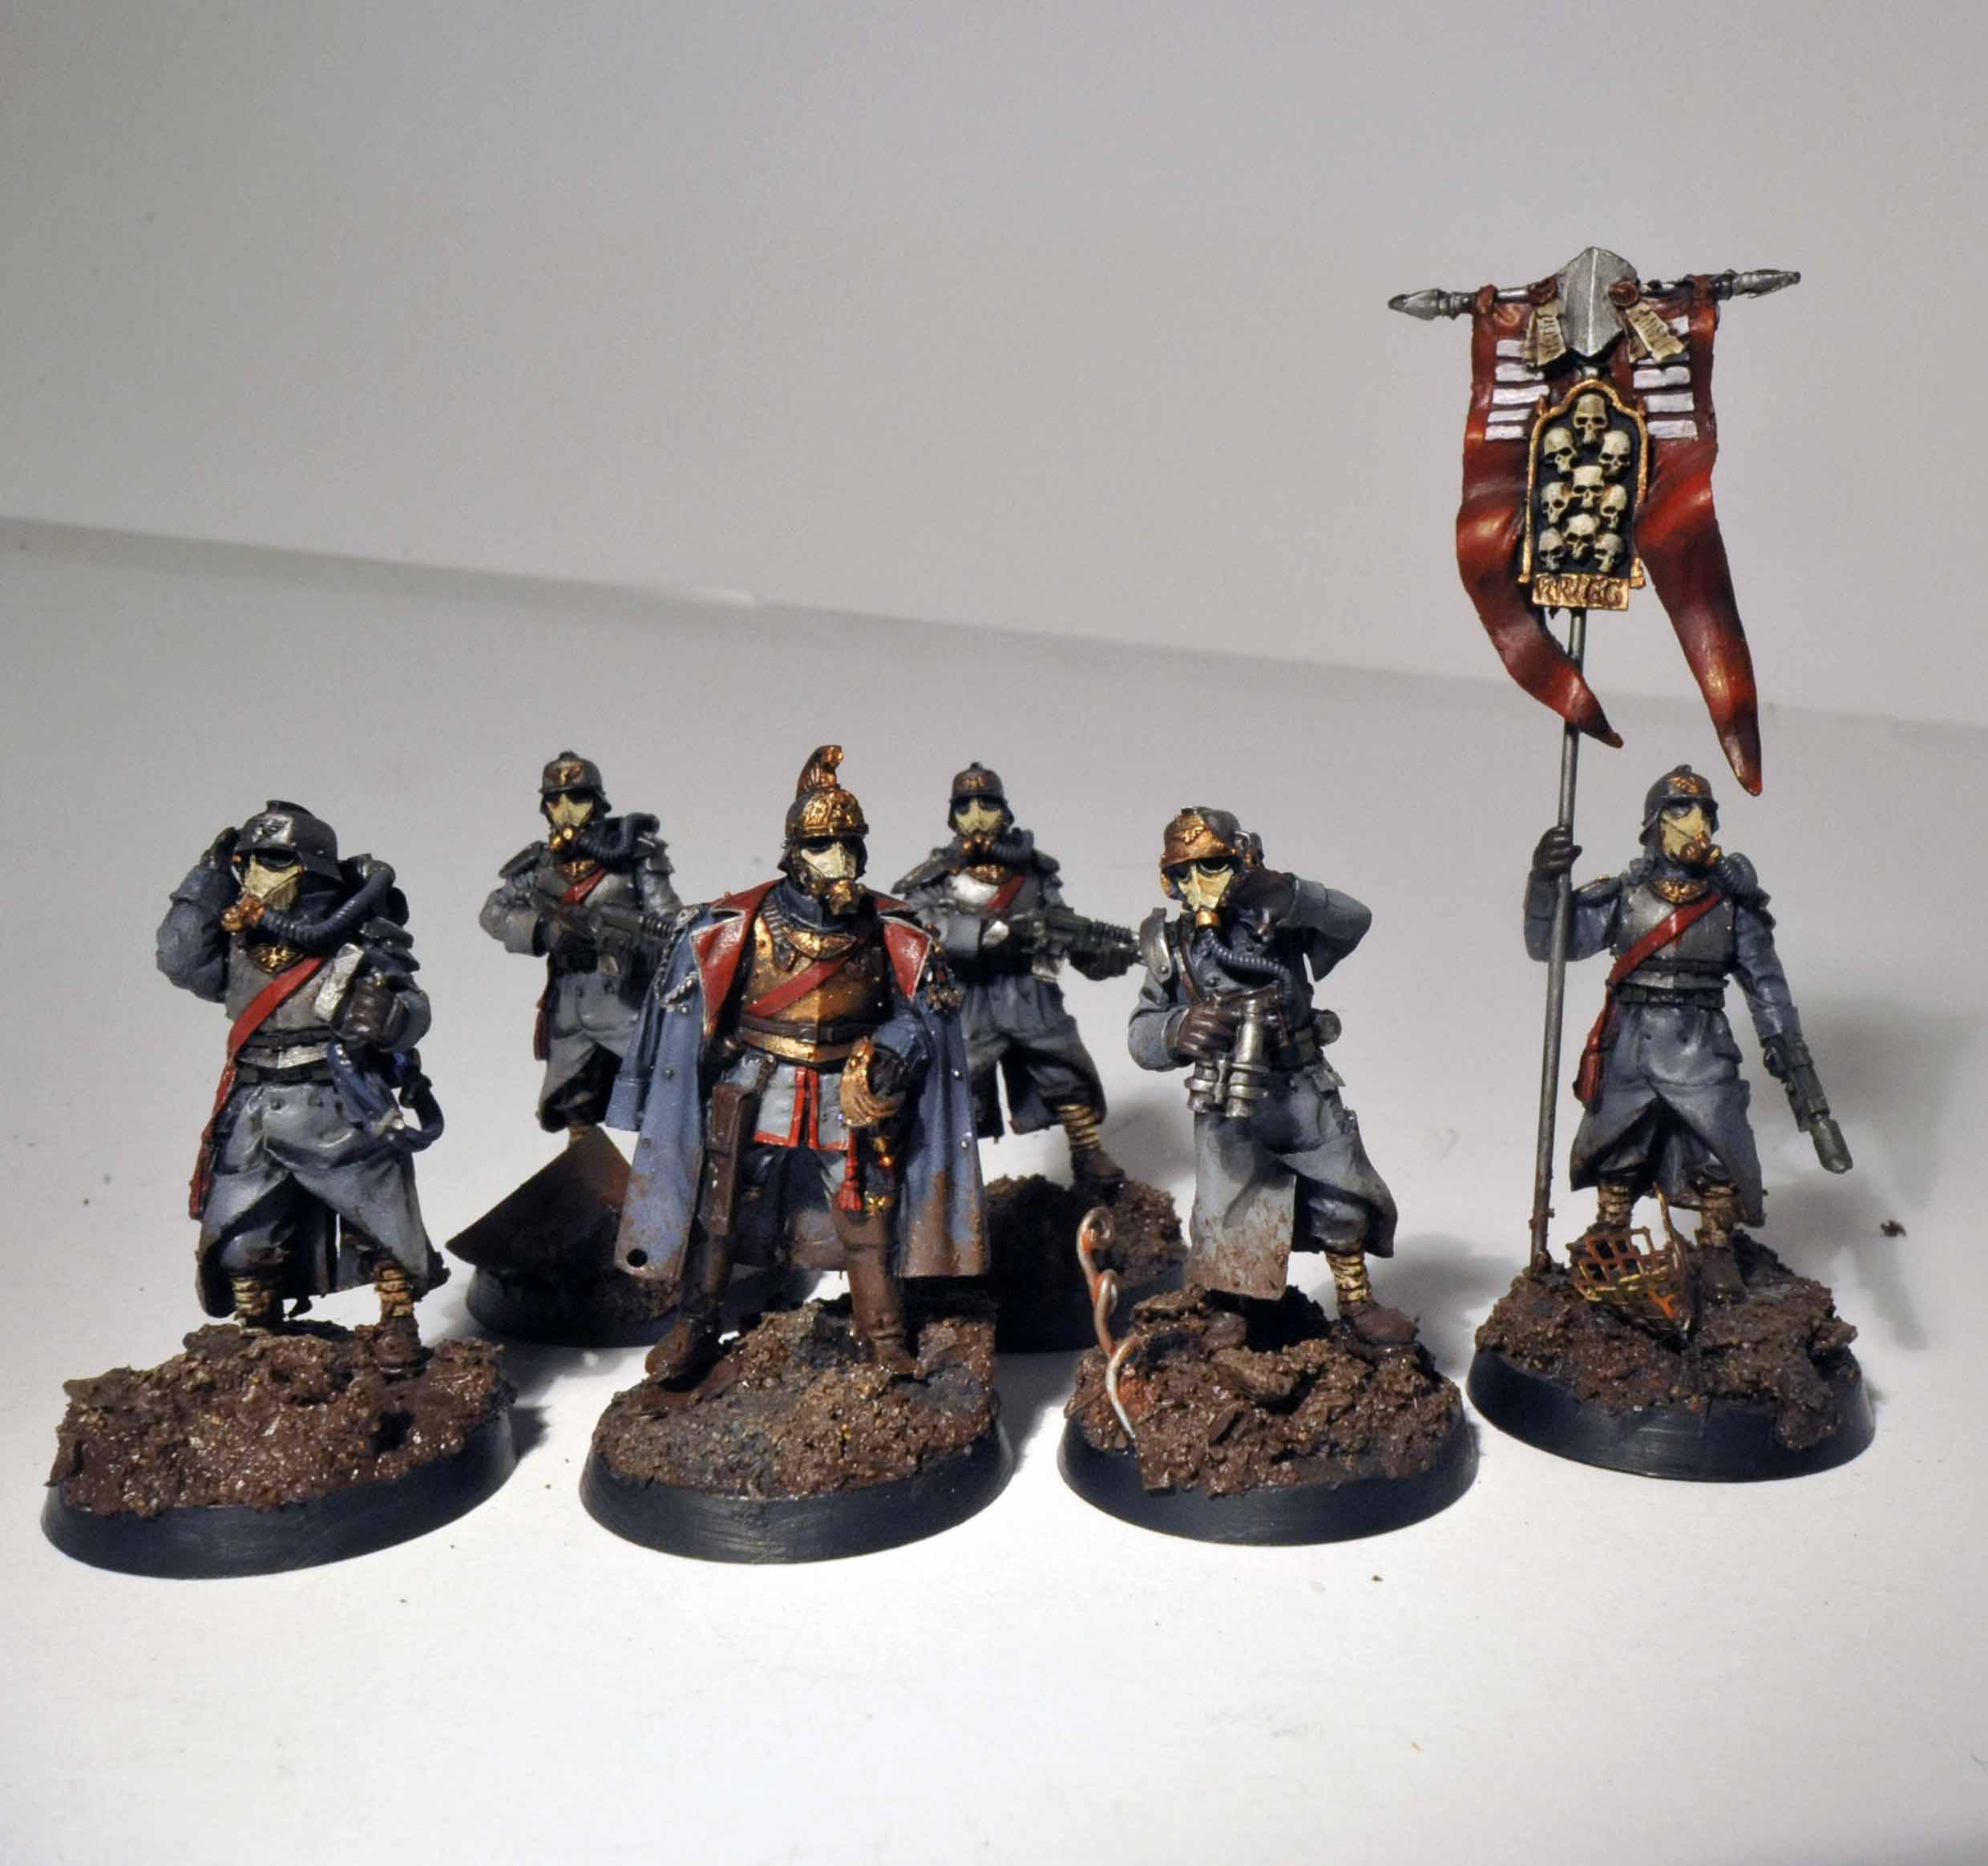 Ccs, Command, Company Command Squad, Death, Death Korps of Krieg, Forge, Forge World, Headquarters, Imperial, Imperial Guard, Korps, Kreigs, Lasgun, Master Of Ordnance, Squad, Warhammer 40,000